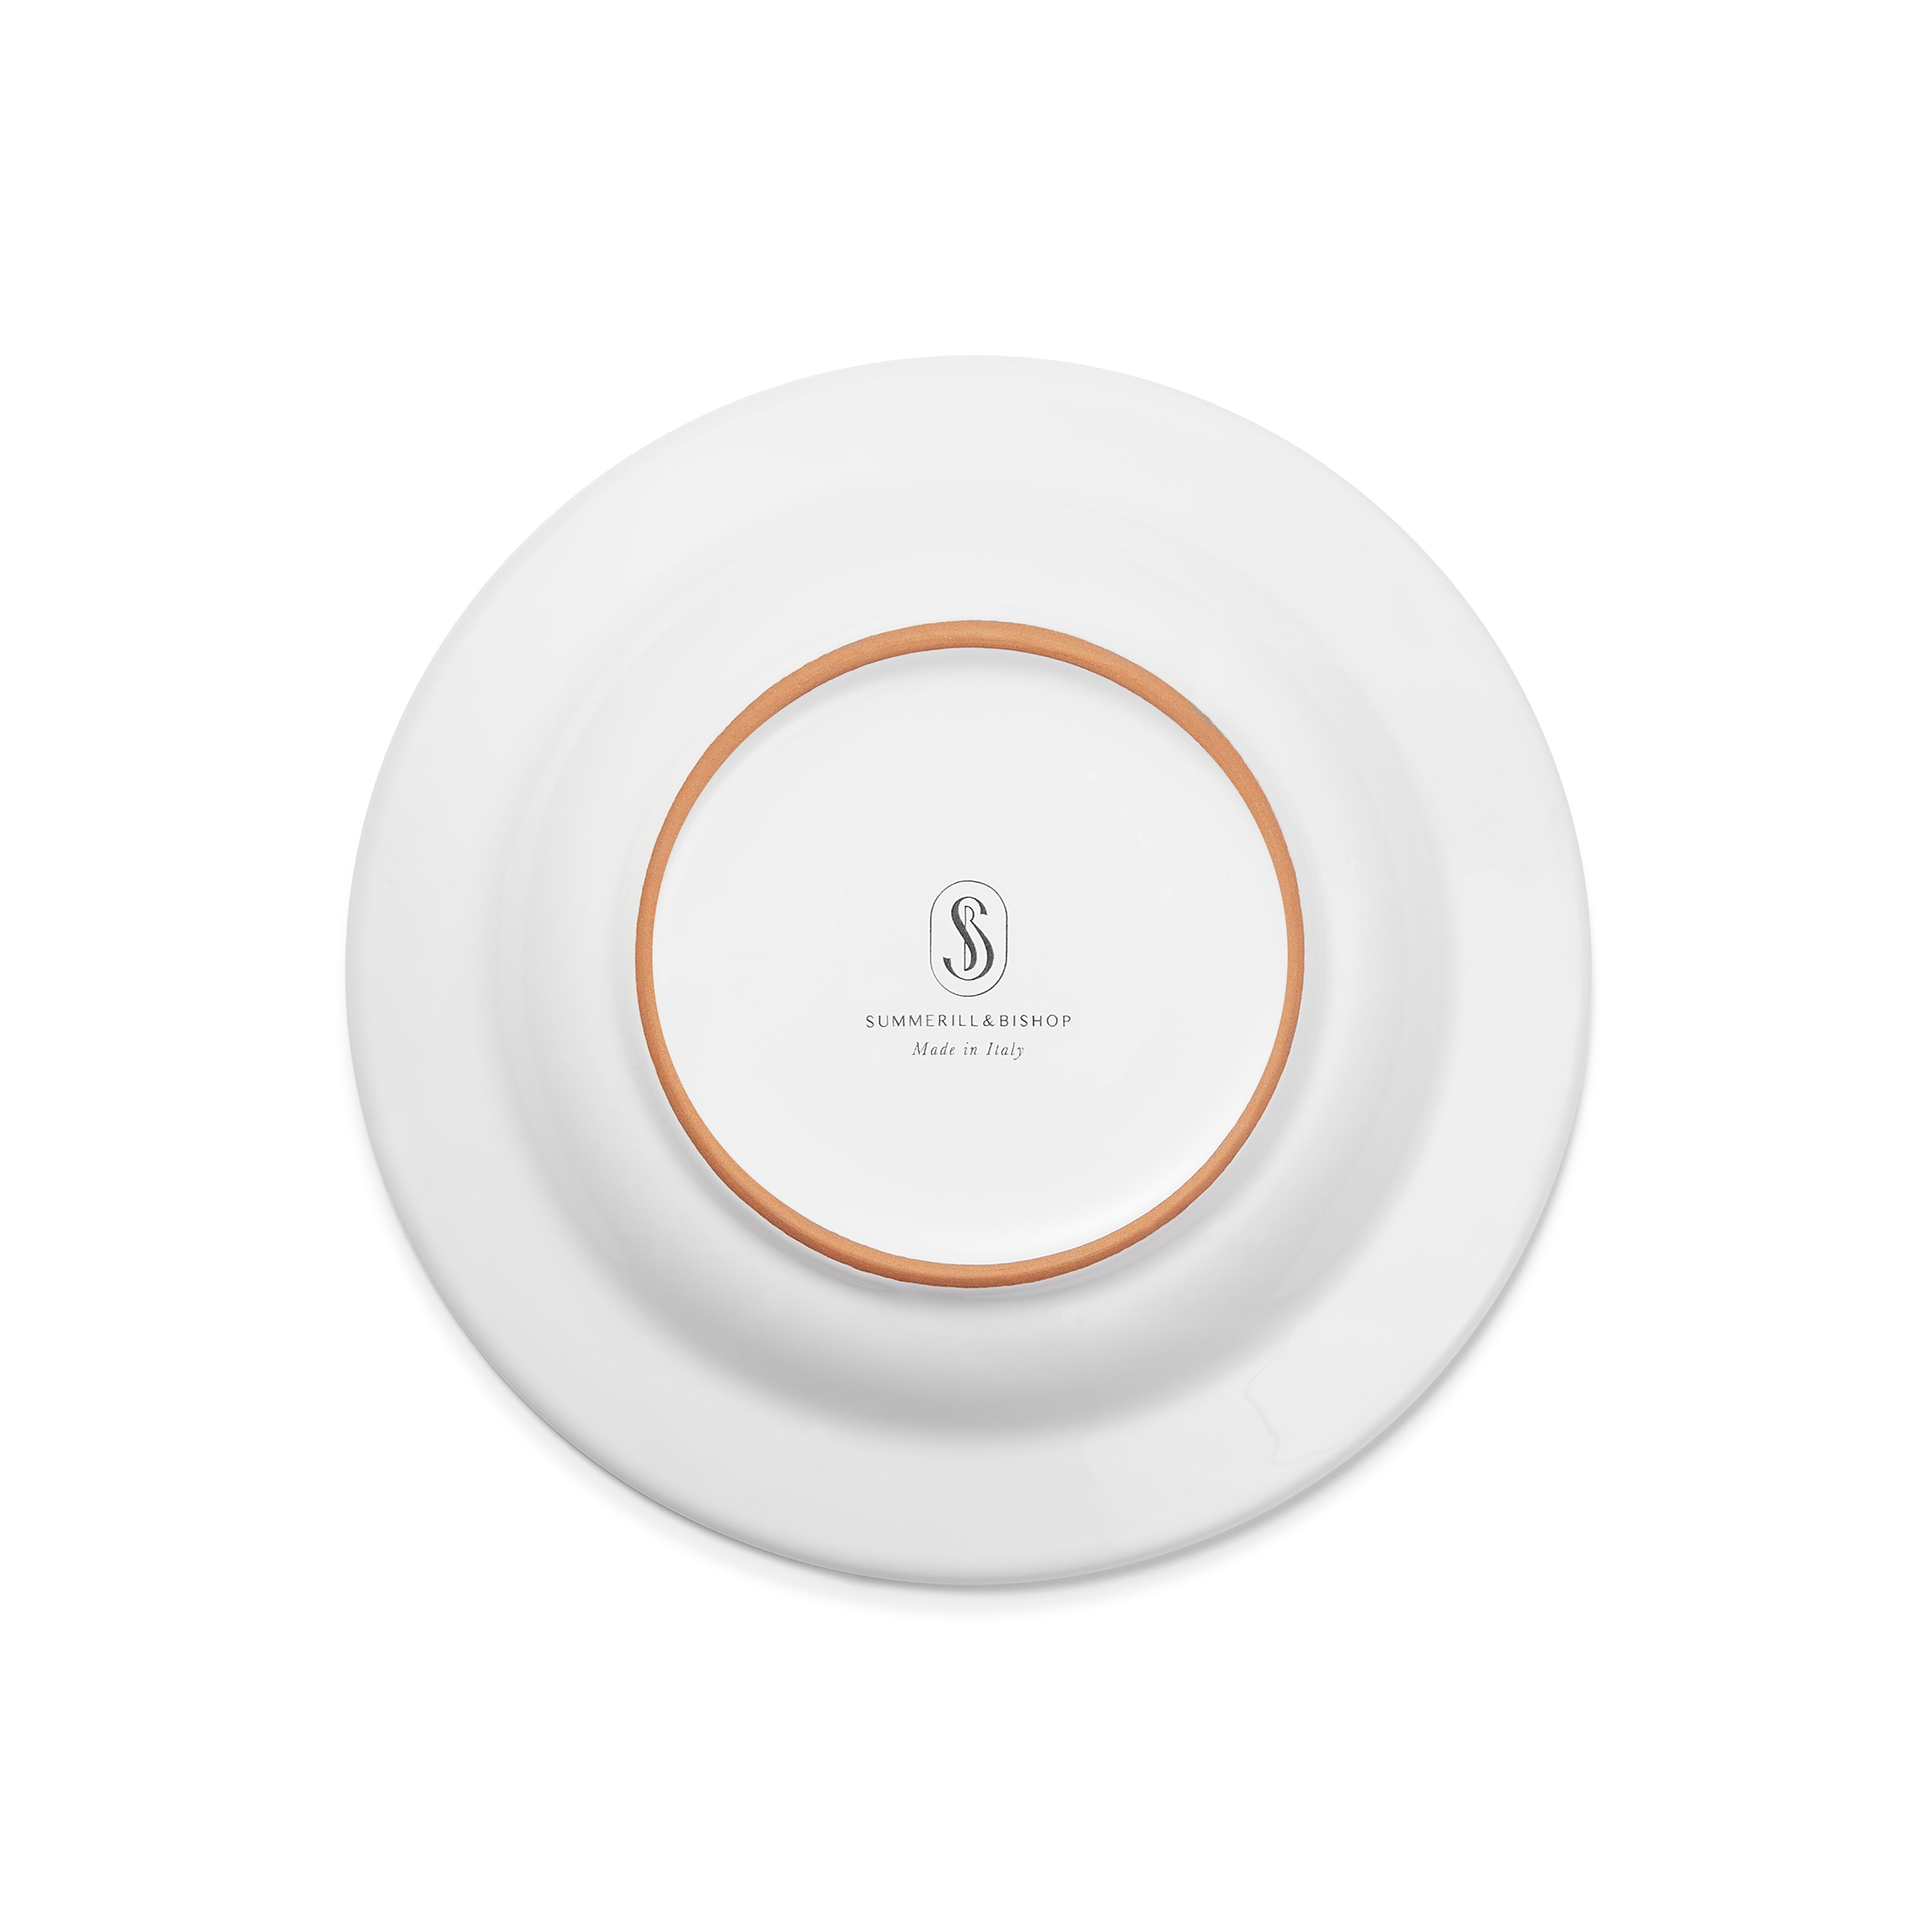 S&B Plain White Rimmed Ceramic Side Plate, 21cm